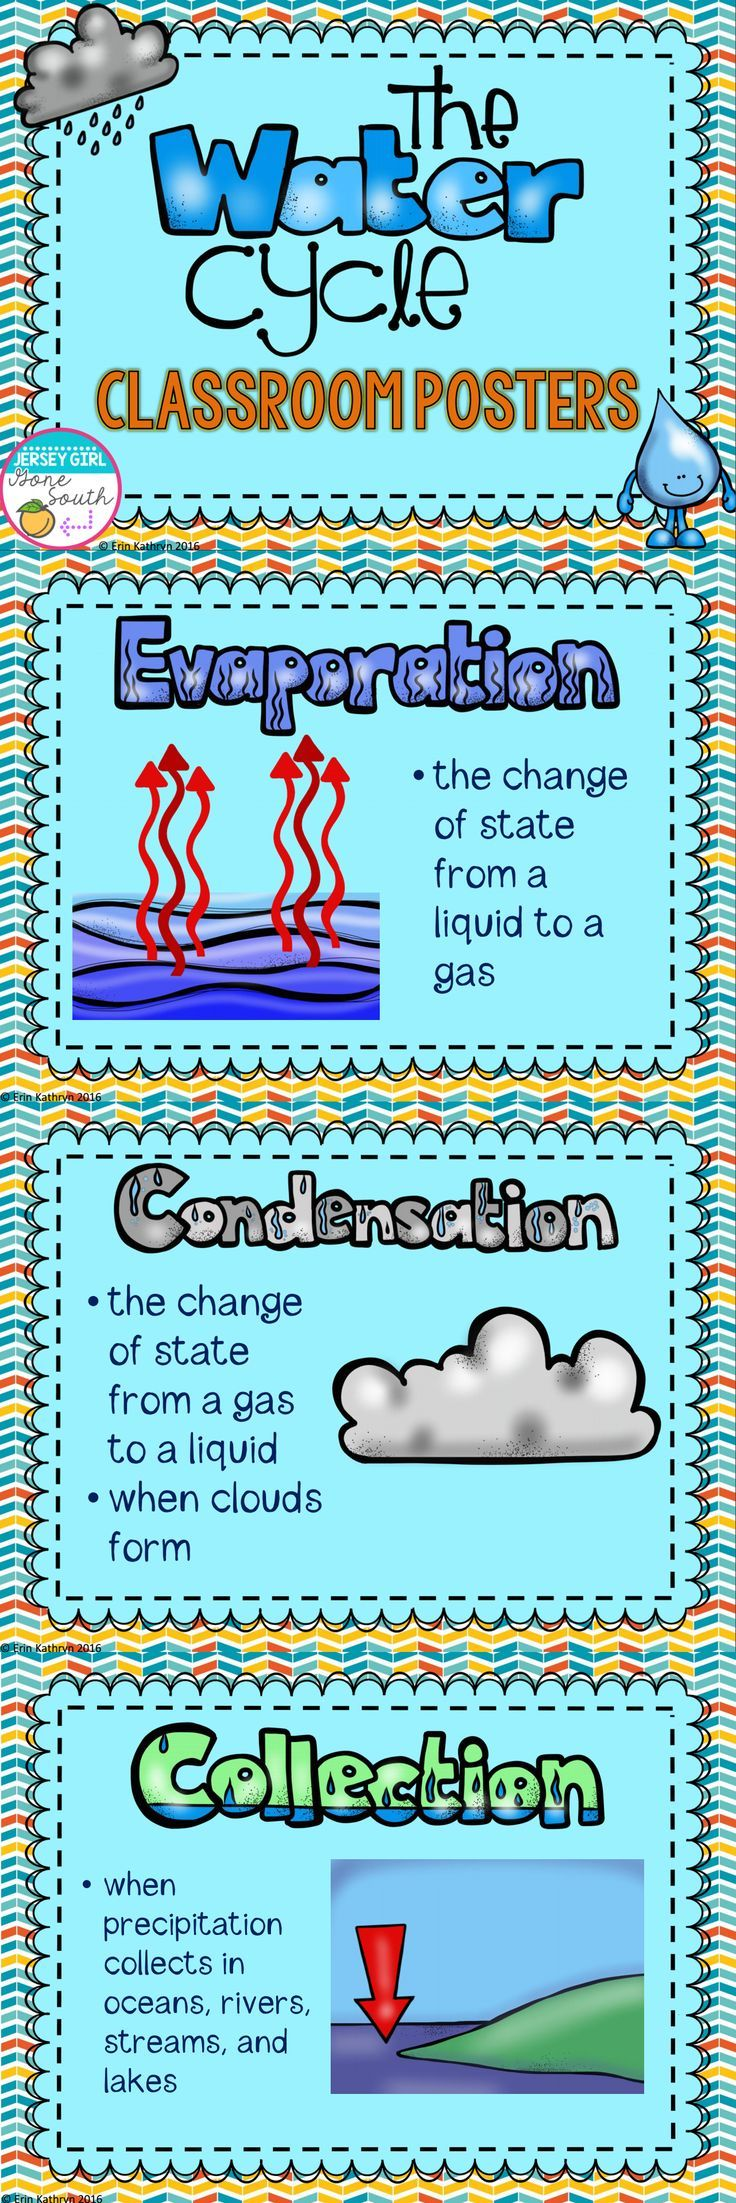 water cycle poster project Water cycle poster pa-1588 is a 2-sided poster provides information on nature's recycling system and contains information on watersheds, pollution, etc the.